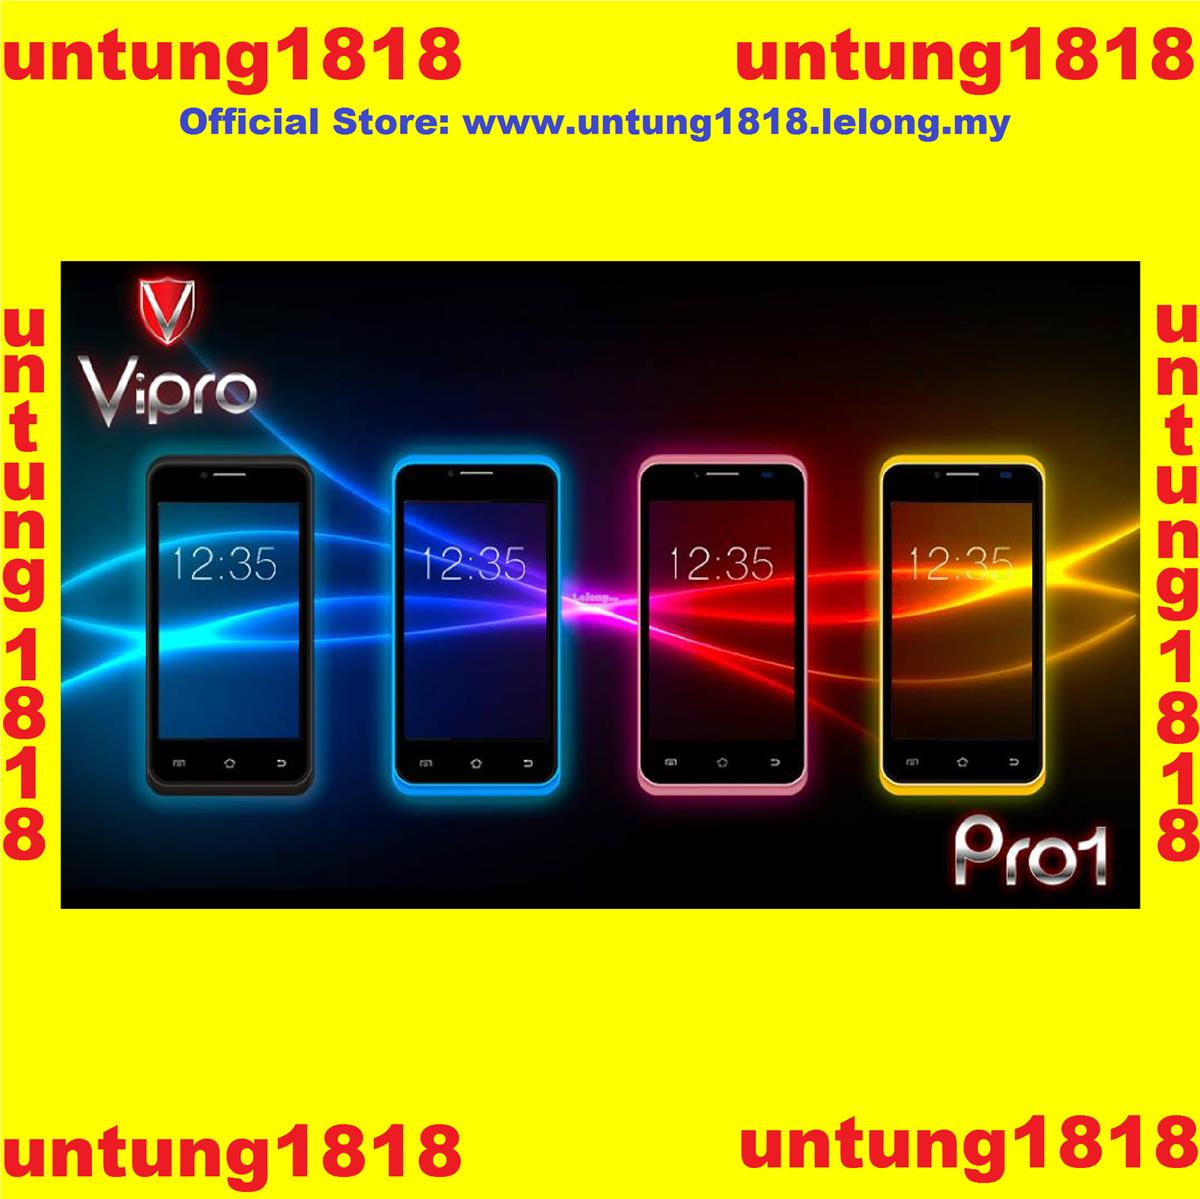 ORIGINAL A Brand By Malaysia.Pro 1 Android Smartphone